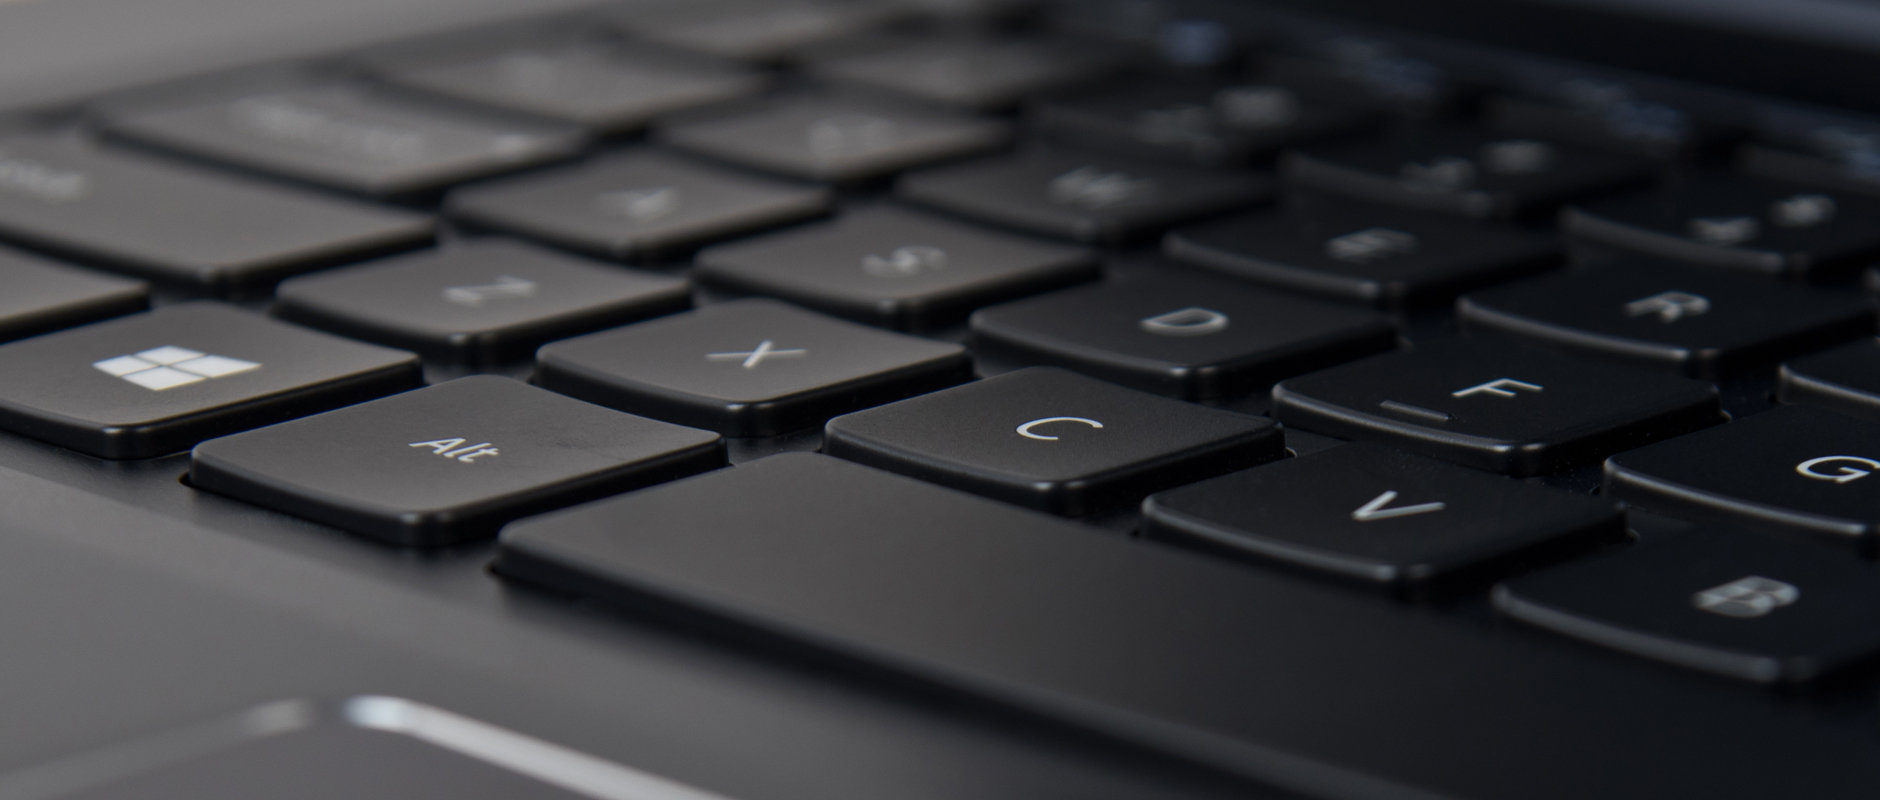 A photograph of the Samsung ATIV Book 9 2014 edition's keyboard.